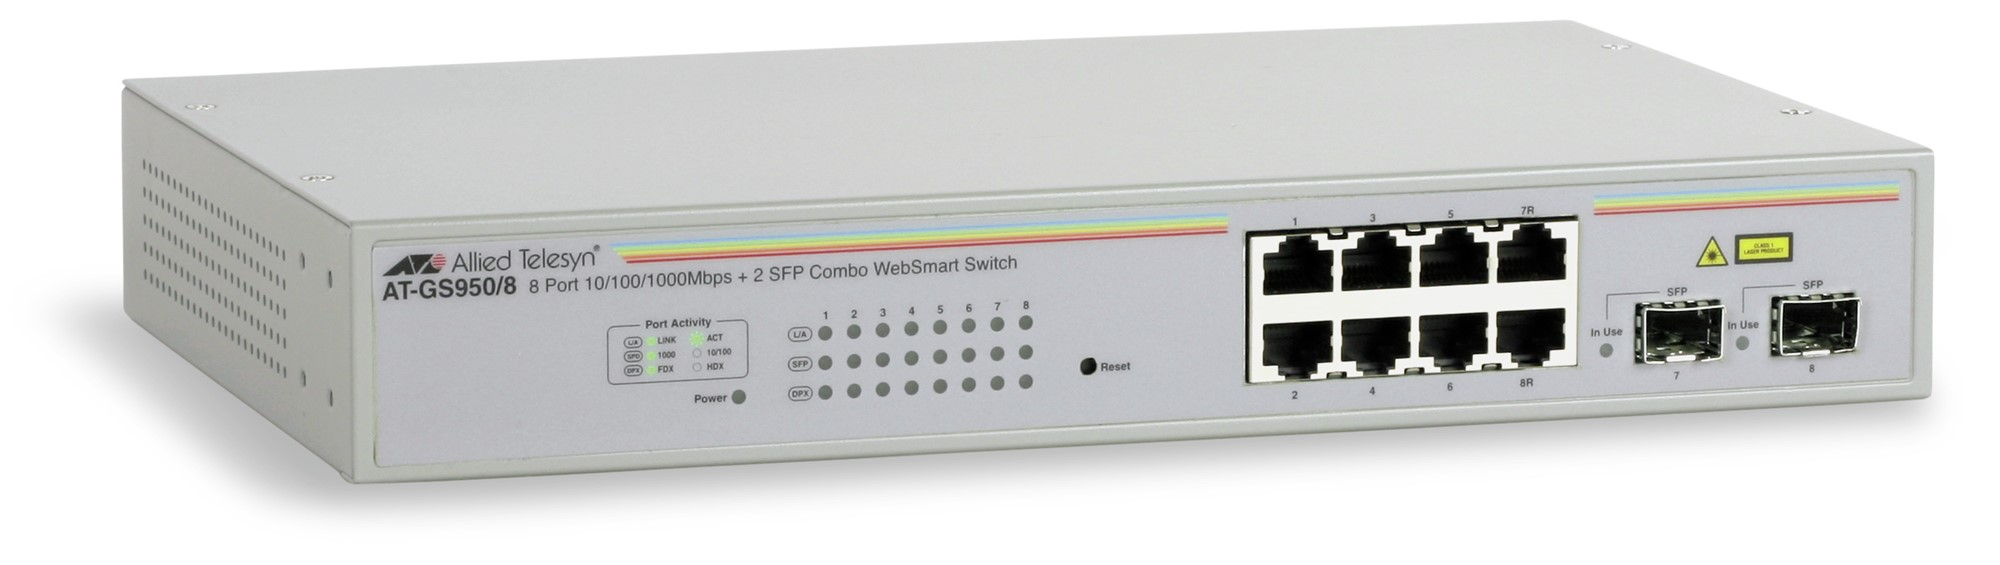 ALLIED TELESIS AT-GS950/8-50 AT-GS950 - 8-50 MANAGED NETWORK SWITCH